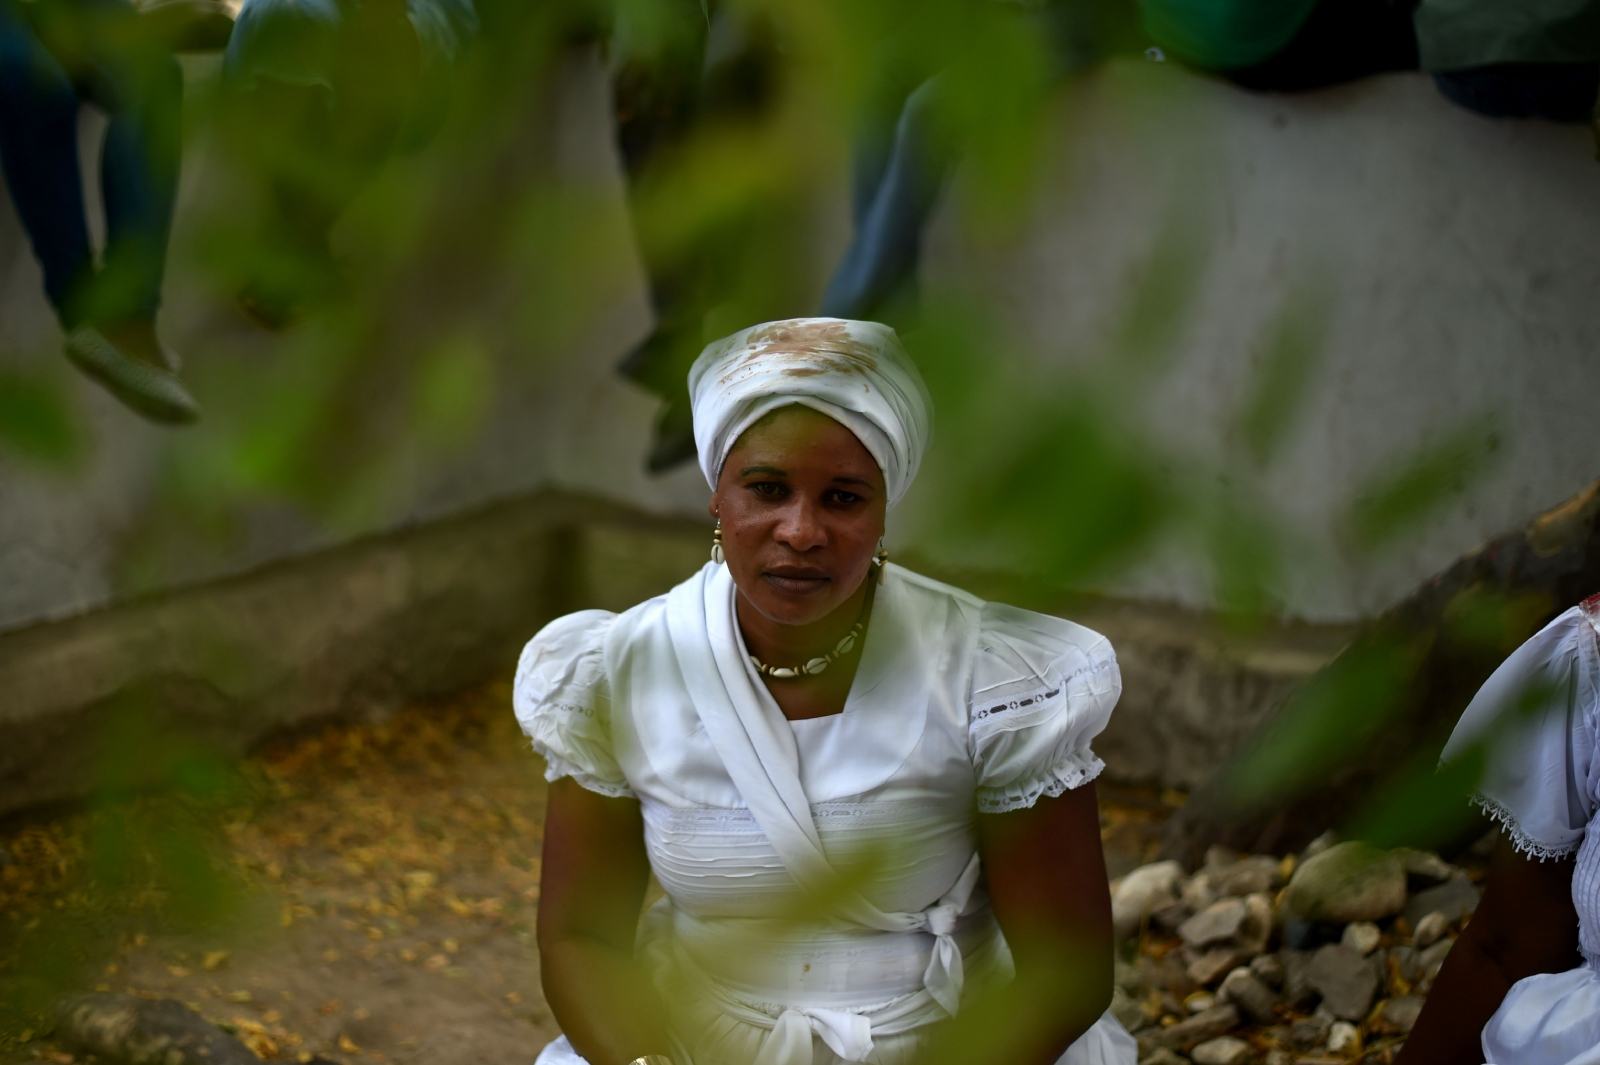 Haitian voodoo follower wearing white clothes